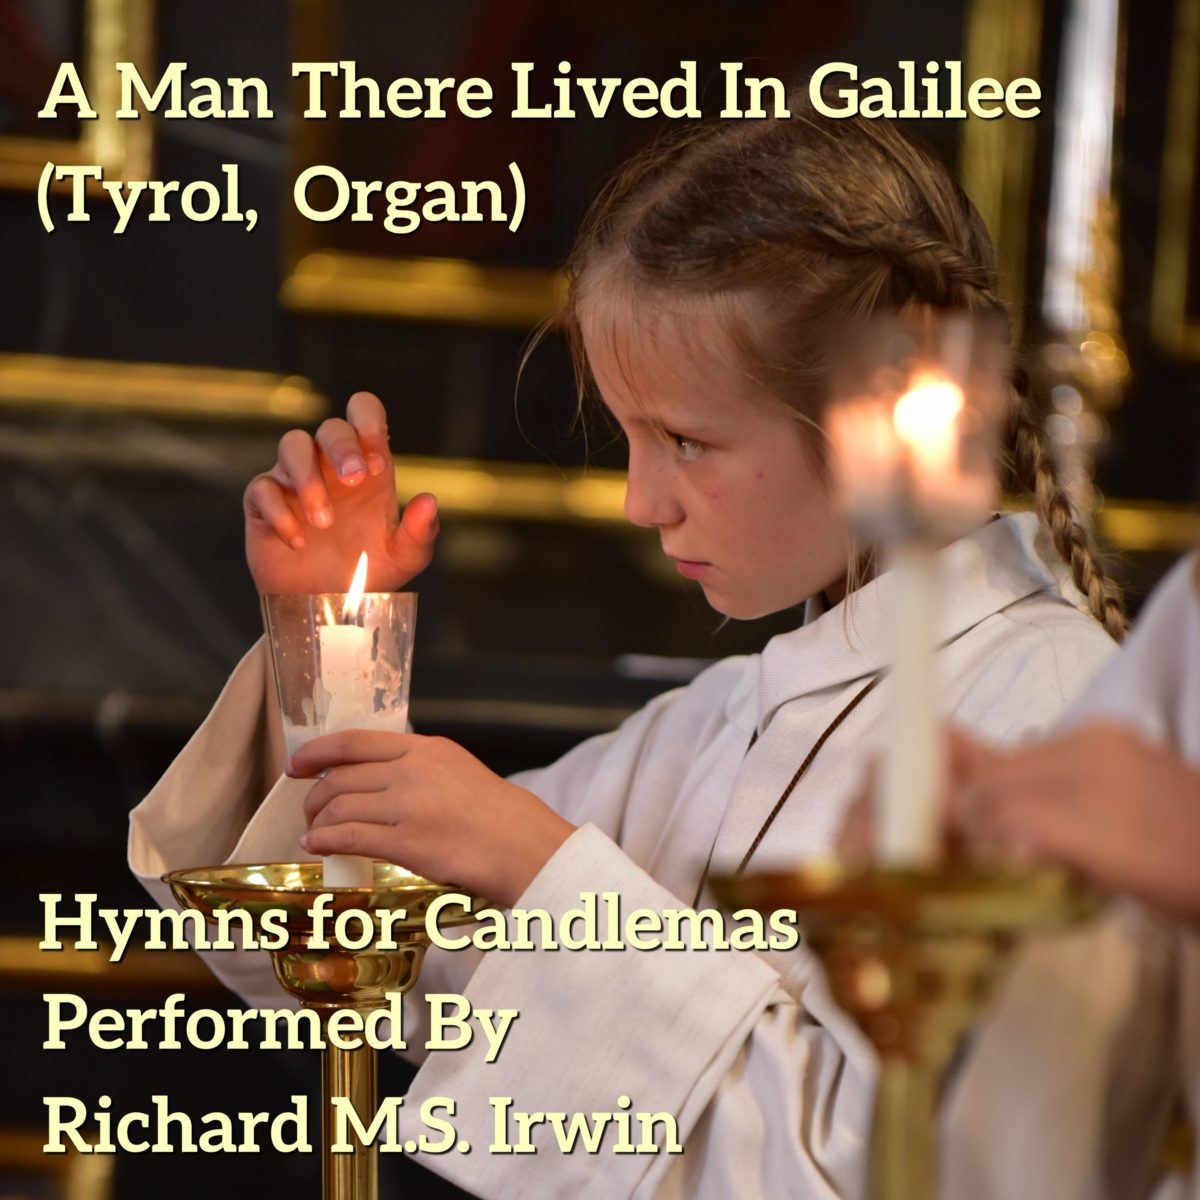 A Man There Lived In Galilee (Tyrol, Organ, 3 Verses)